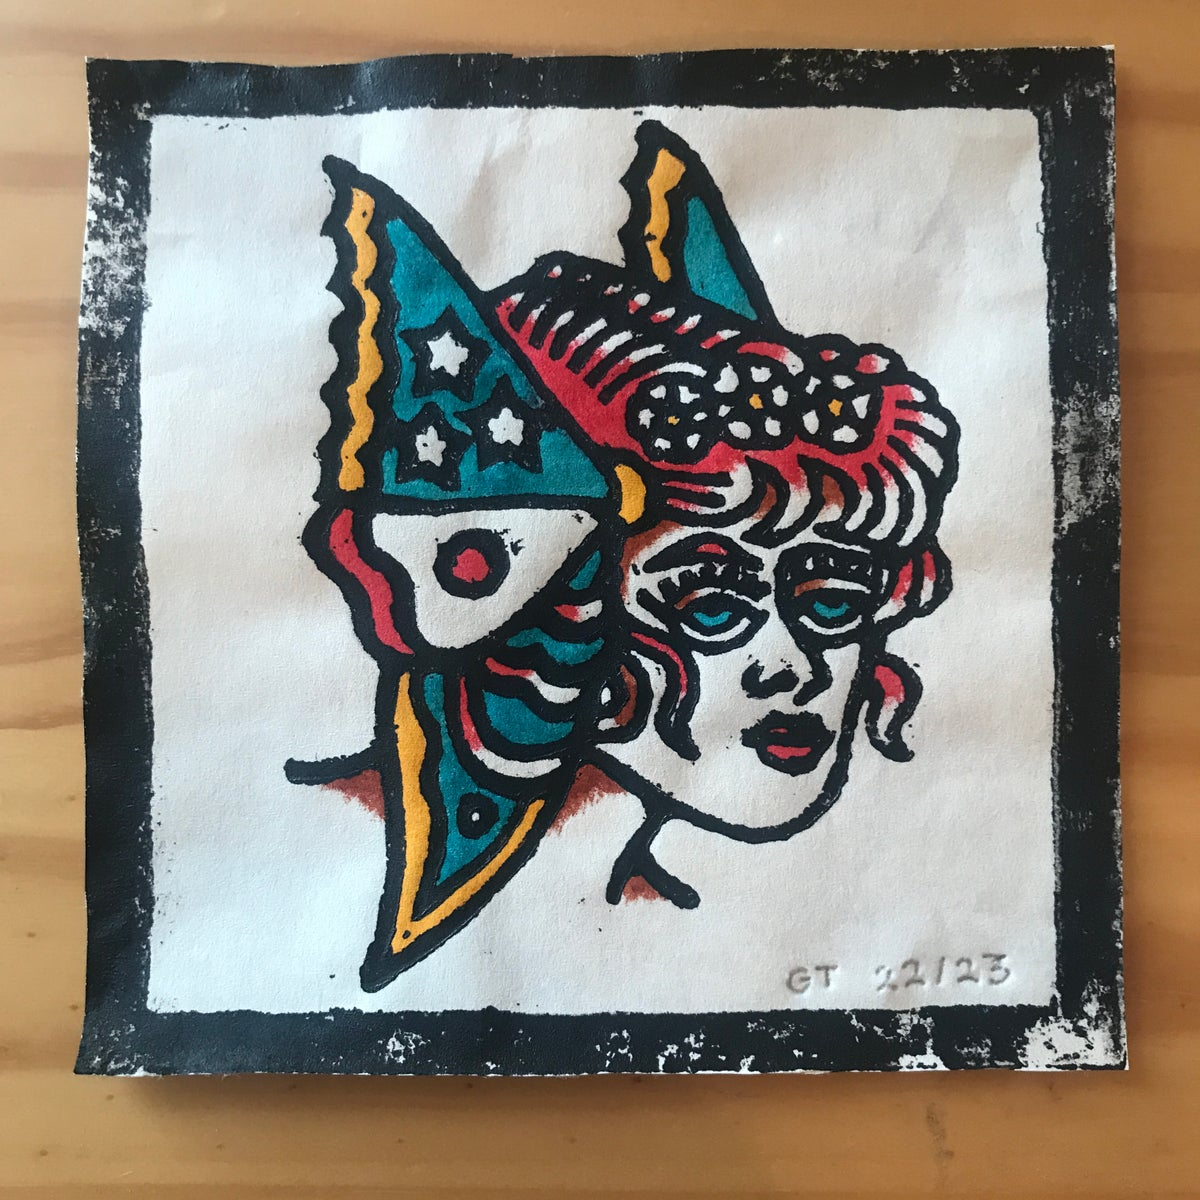 Image of Butterfly lady head woodcut print - 22/23